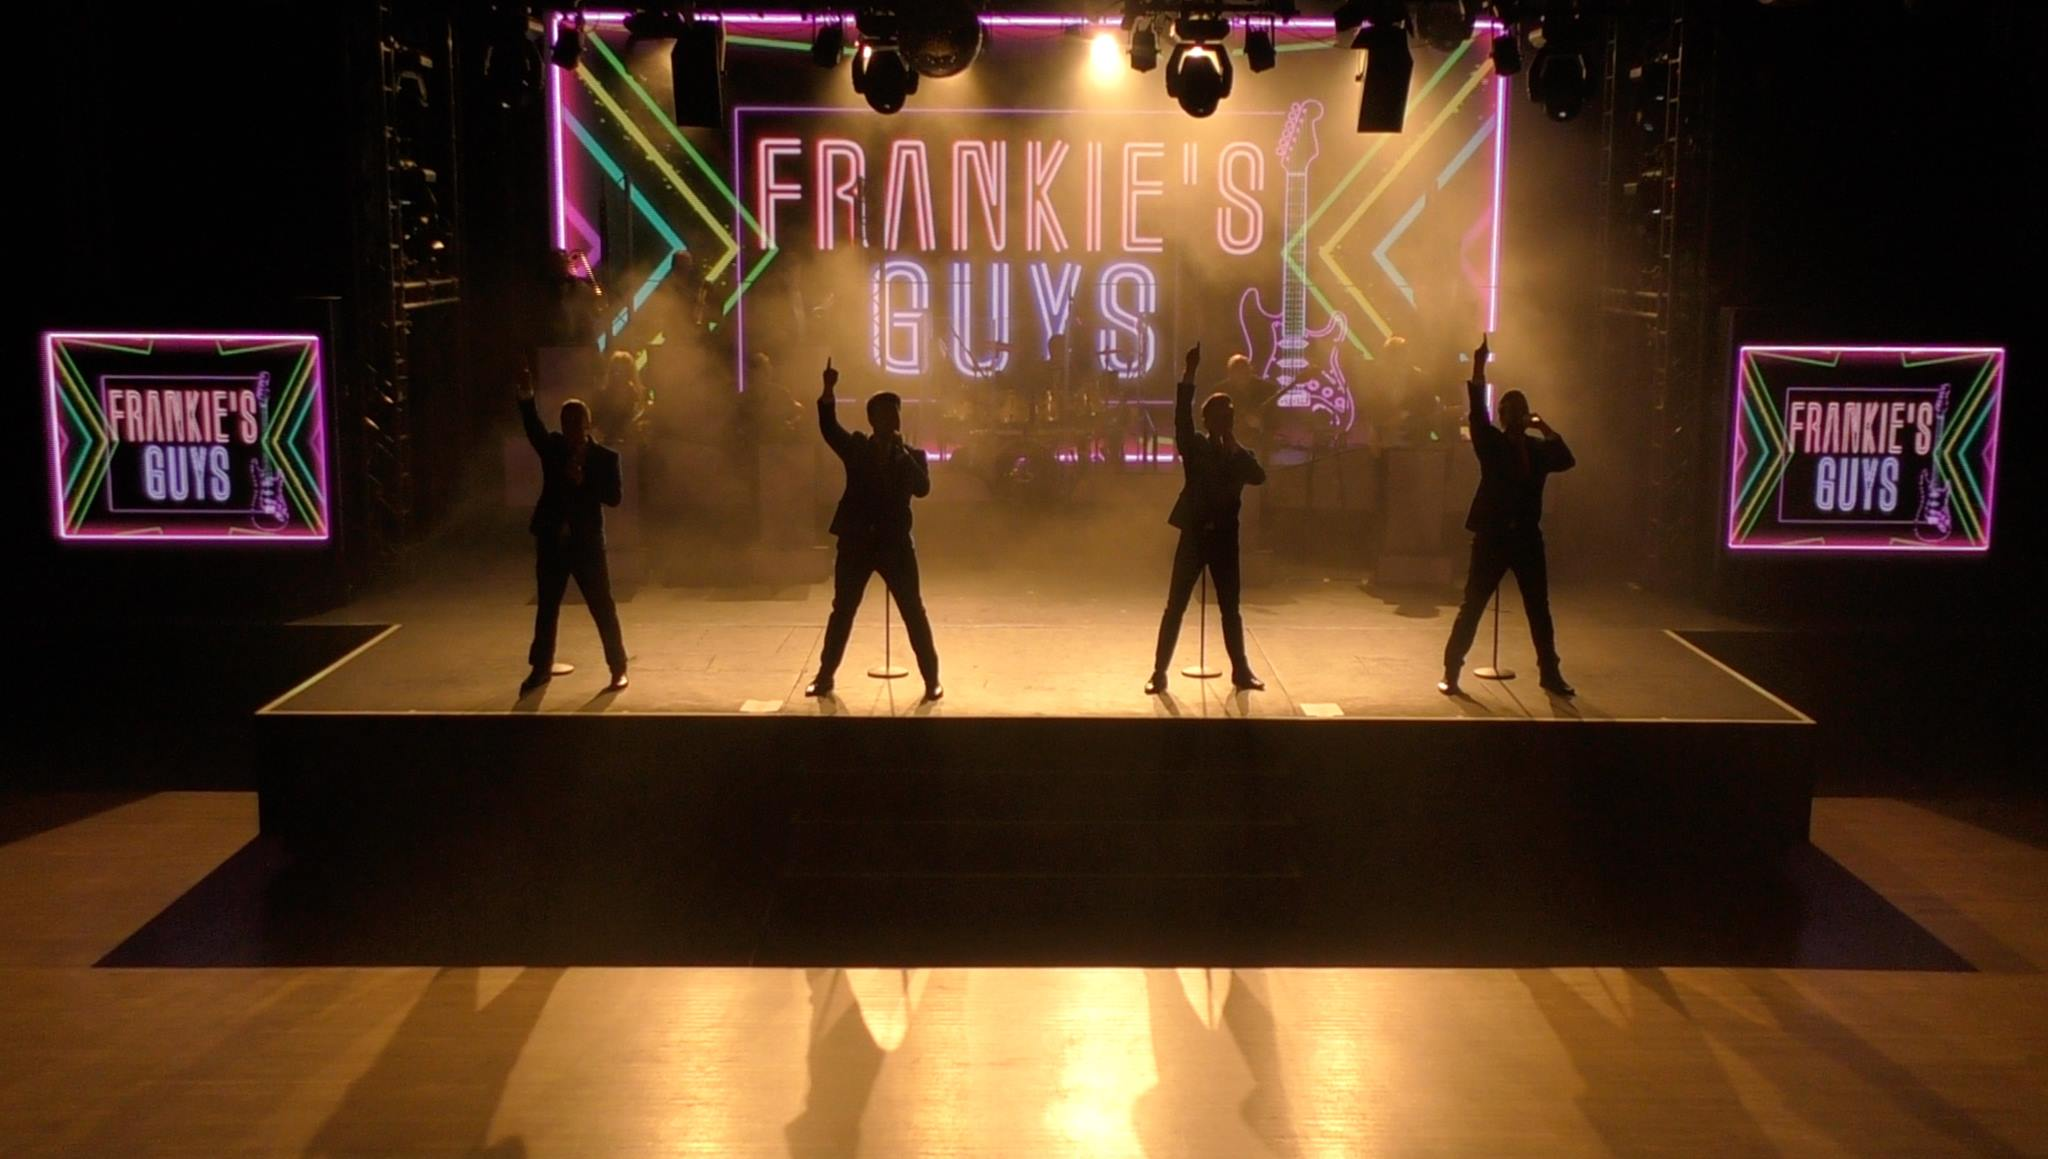 Oh What A Night: A Celebration of Frankie Valli and The Four Seasons